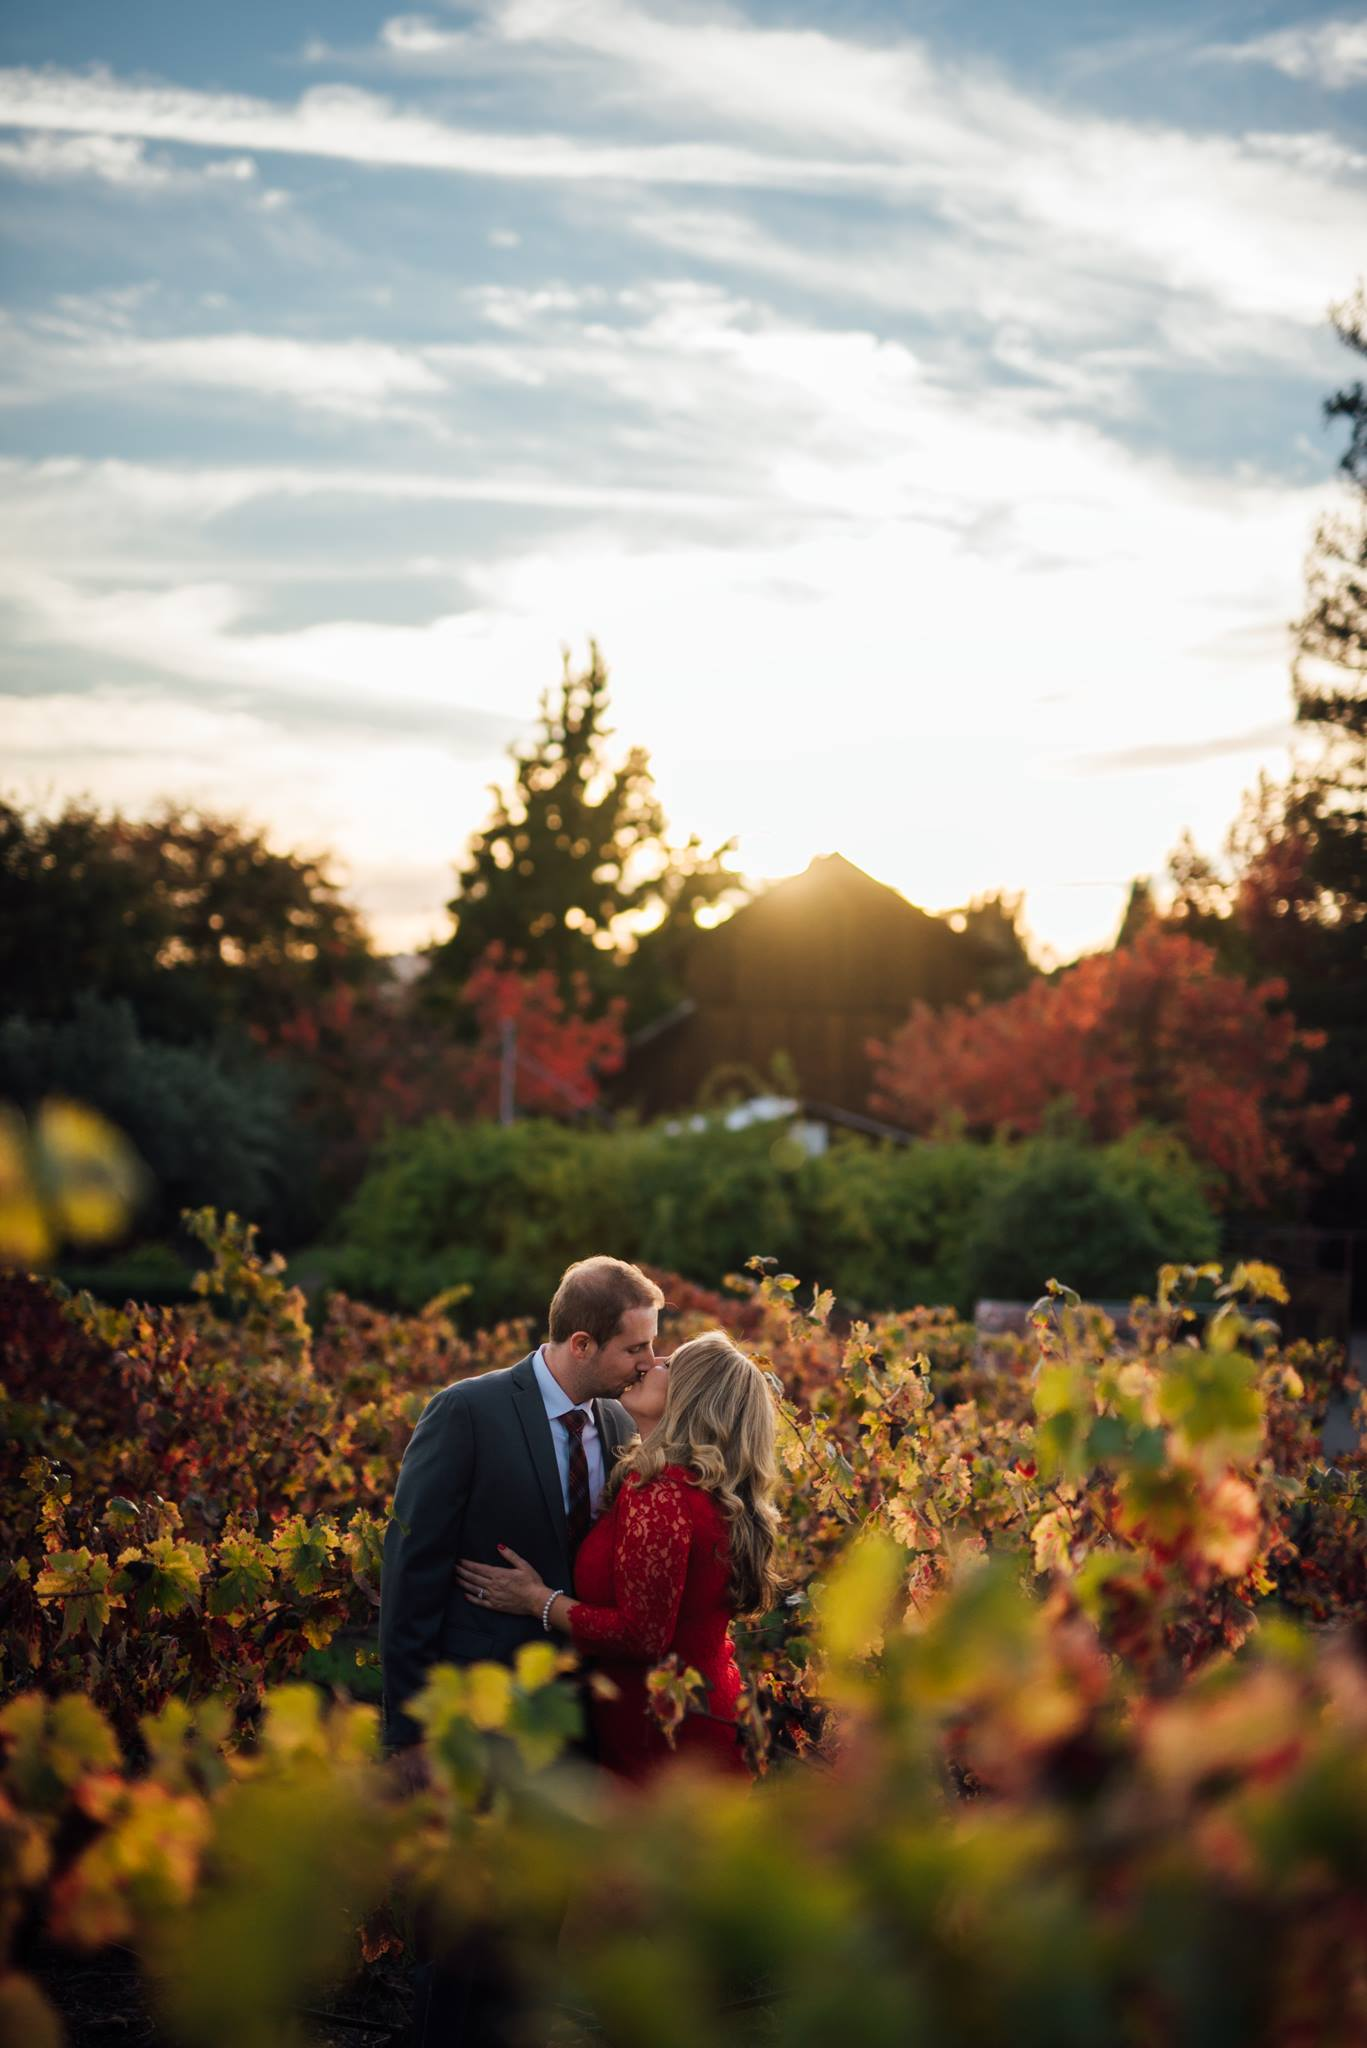 engagement picture ideas, the daily story